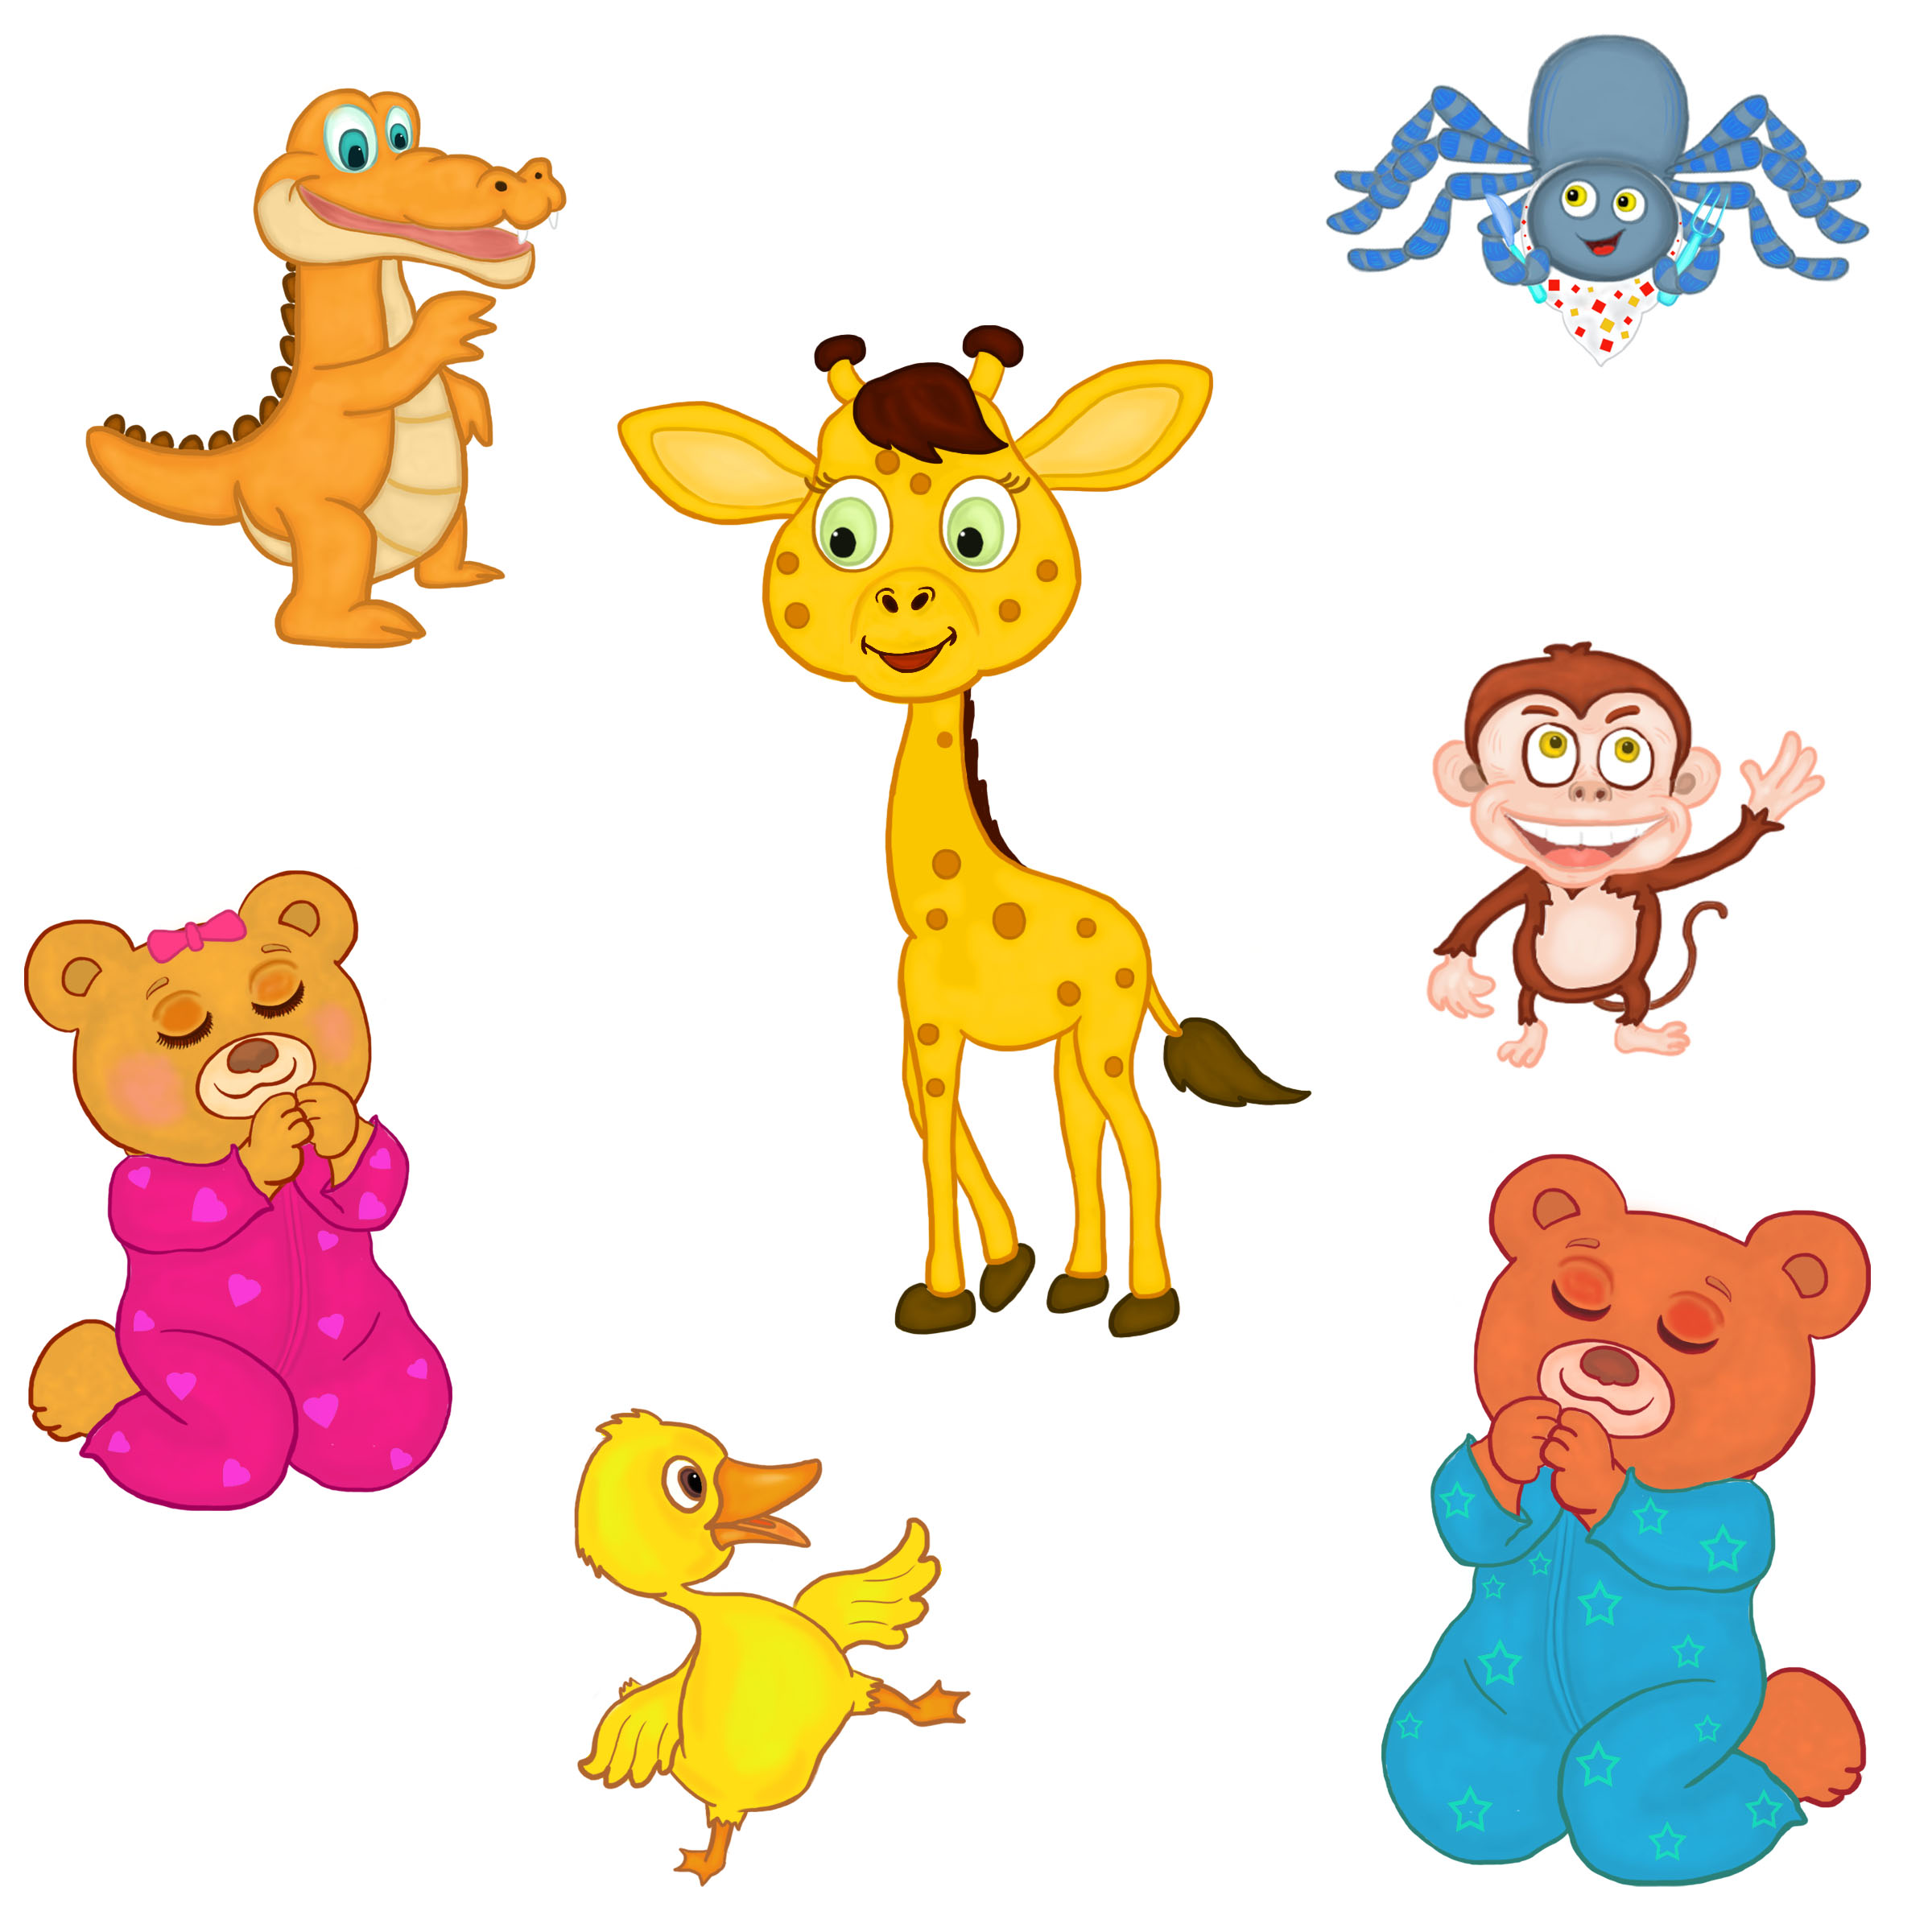 create a FULL COLORED CARTOON ANIMAL